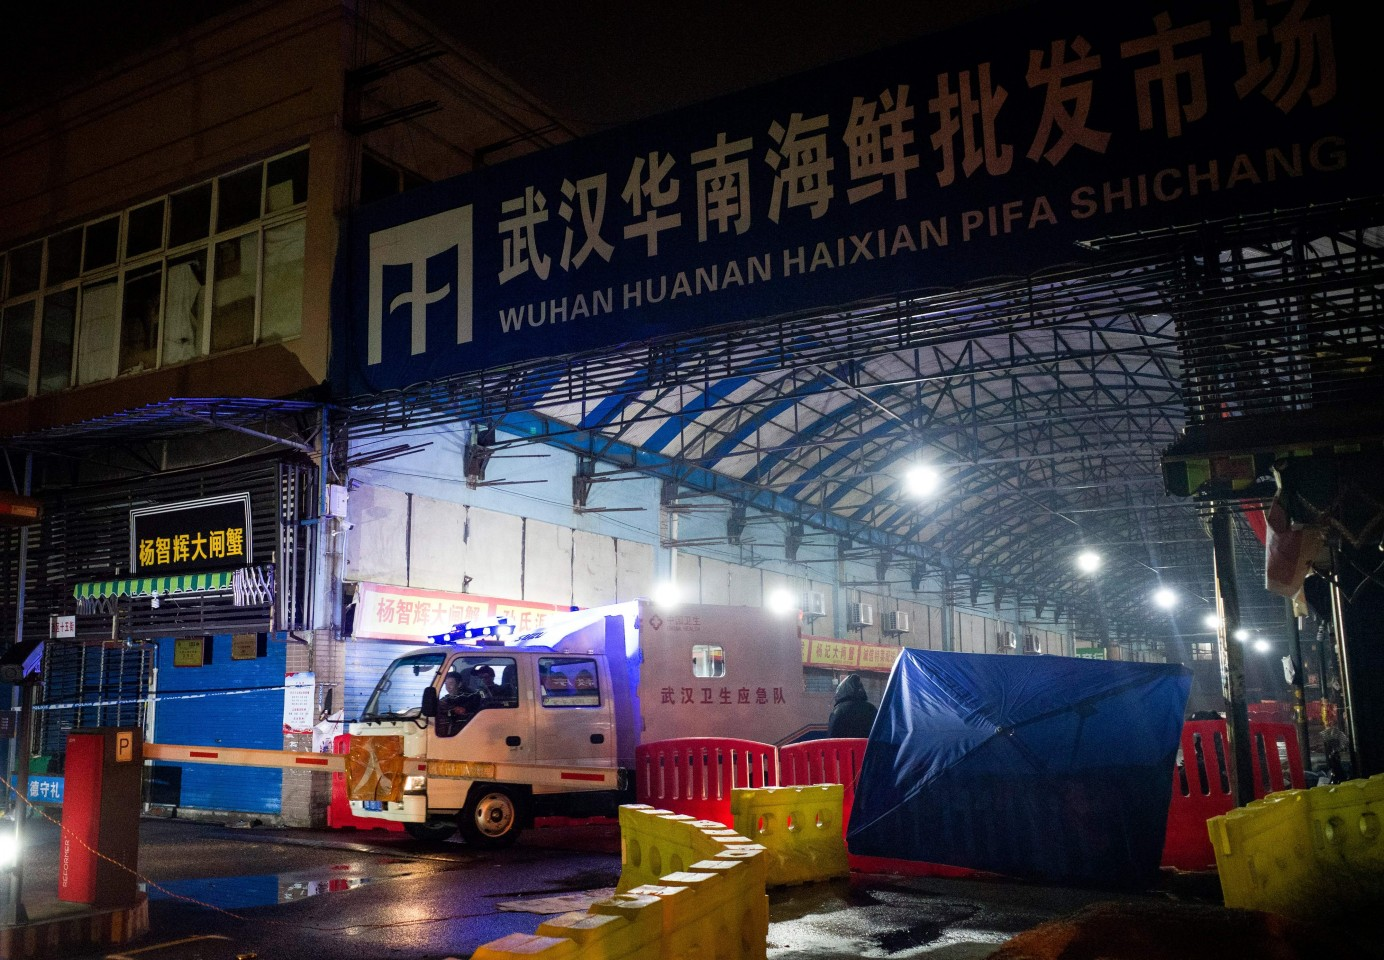 A photo of the now closed Huanan Seafood Wholesale Market, where the man who died from a respiratory illness had purchased goods from. (Noel Celis/AFP)